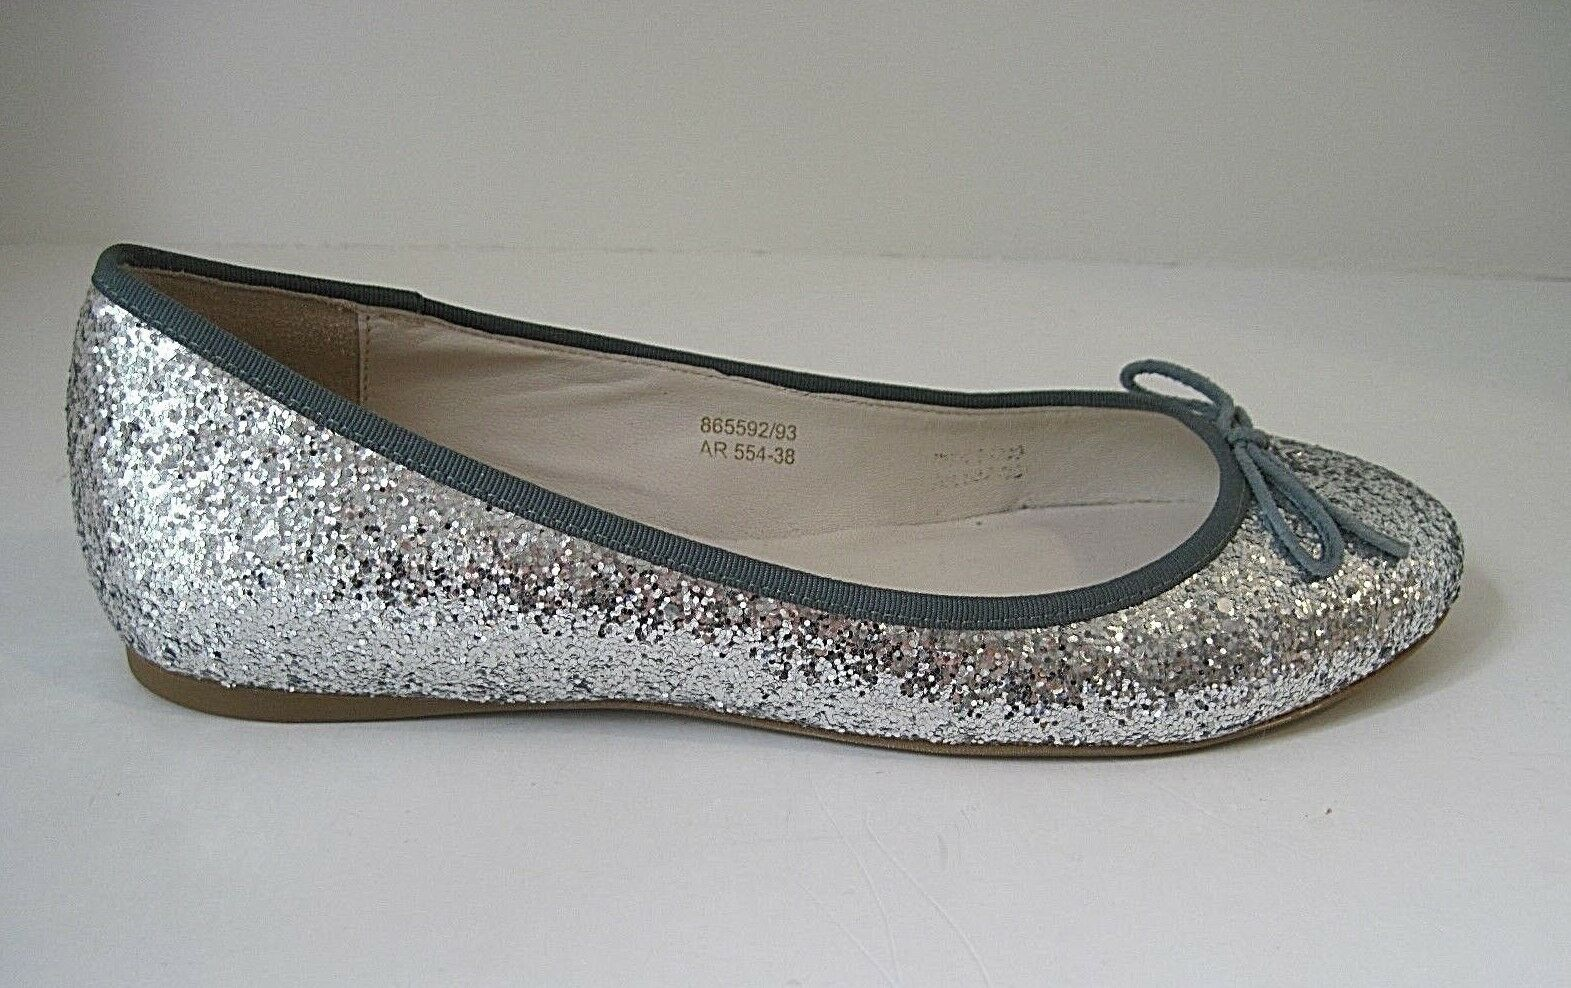 Boden Silver Glitter Flats Green Canvas Trim Front Bow Size 38, NEW